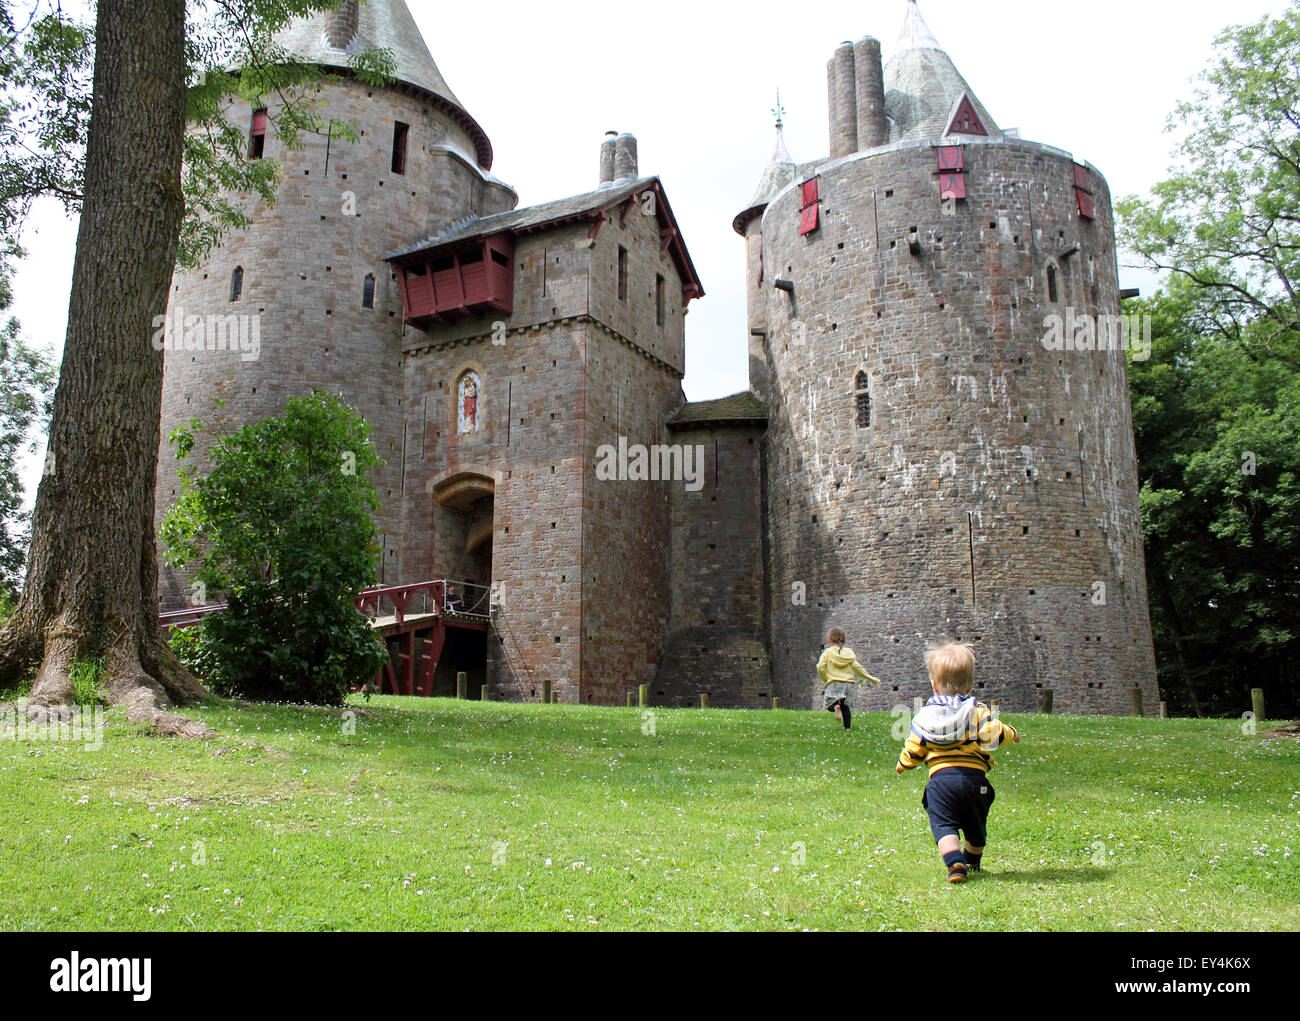 Young boy and girl running towards castle or Castell Coch, Cardiff, South Wales, UK - Stock Image